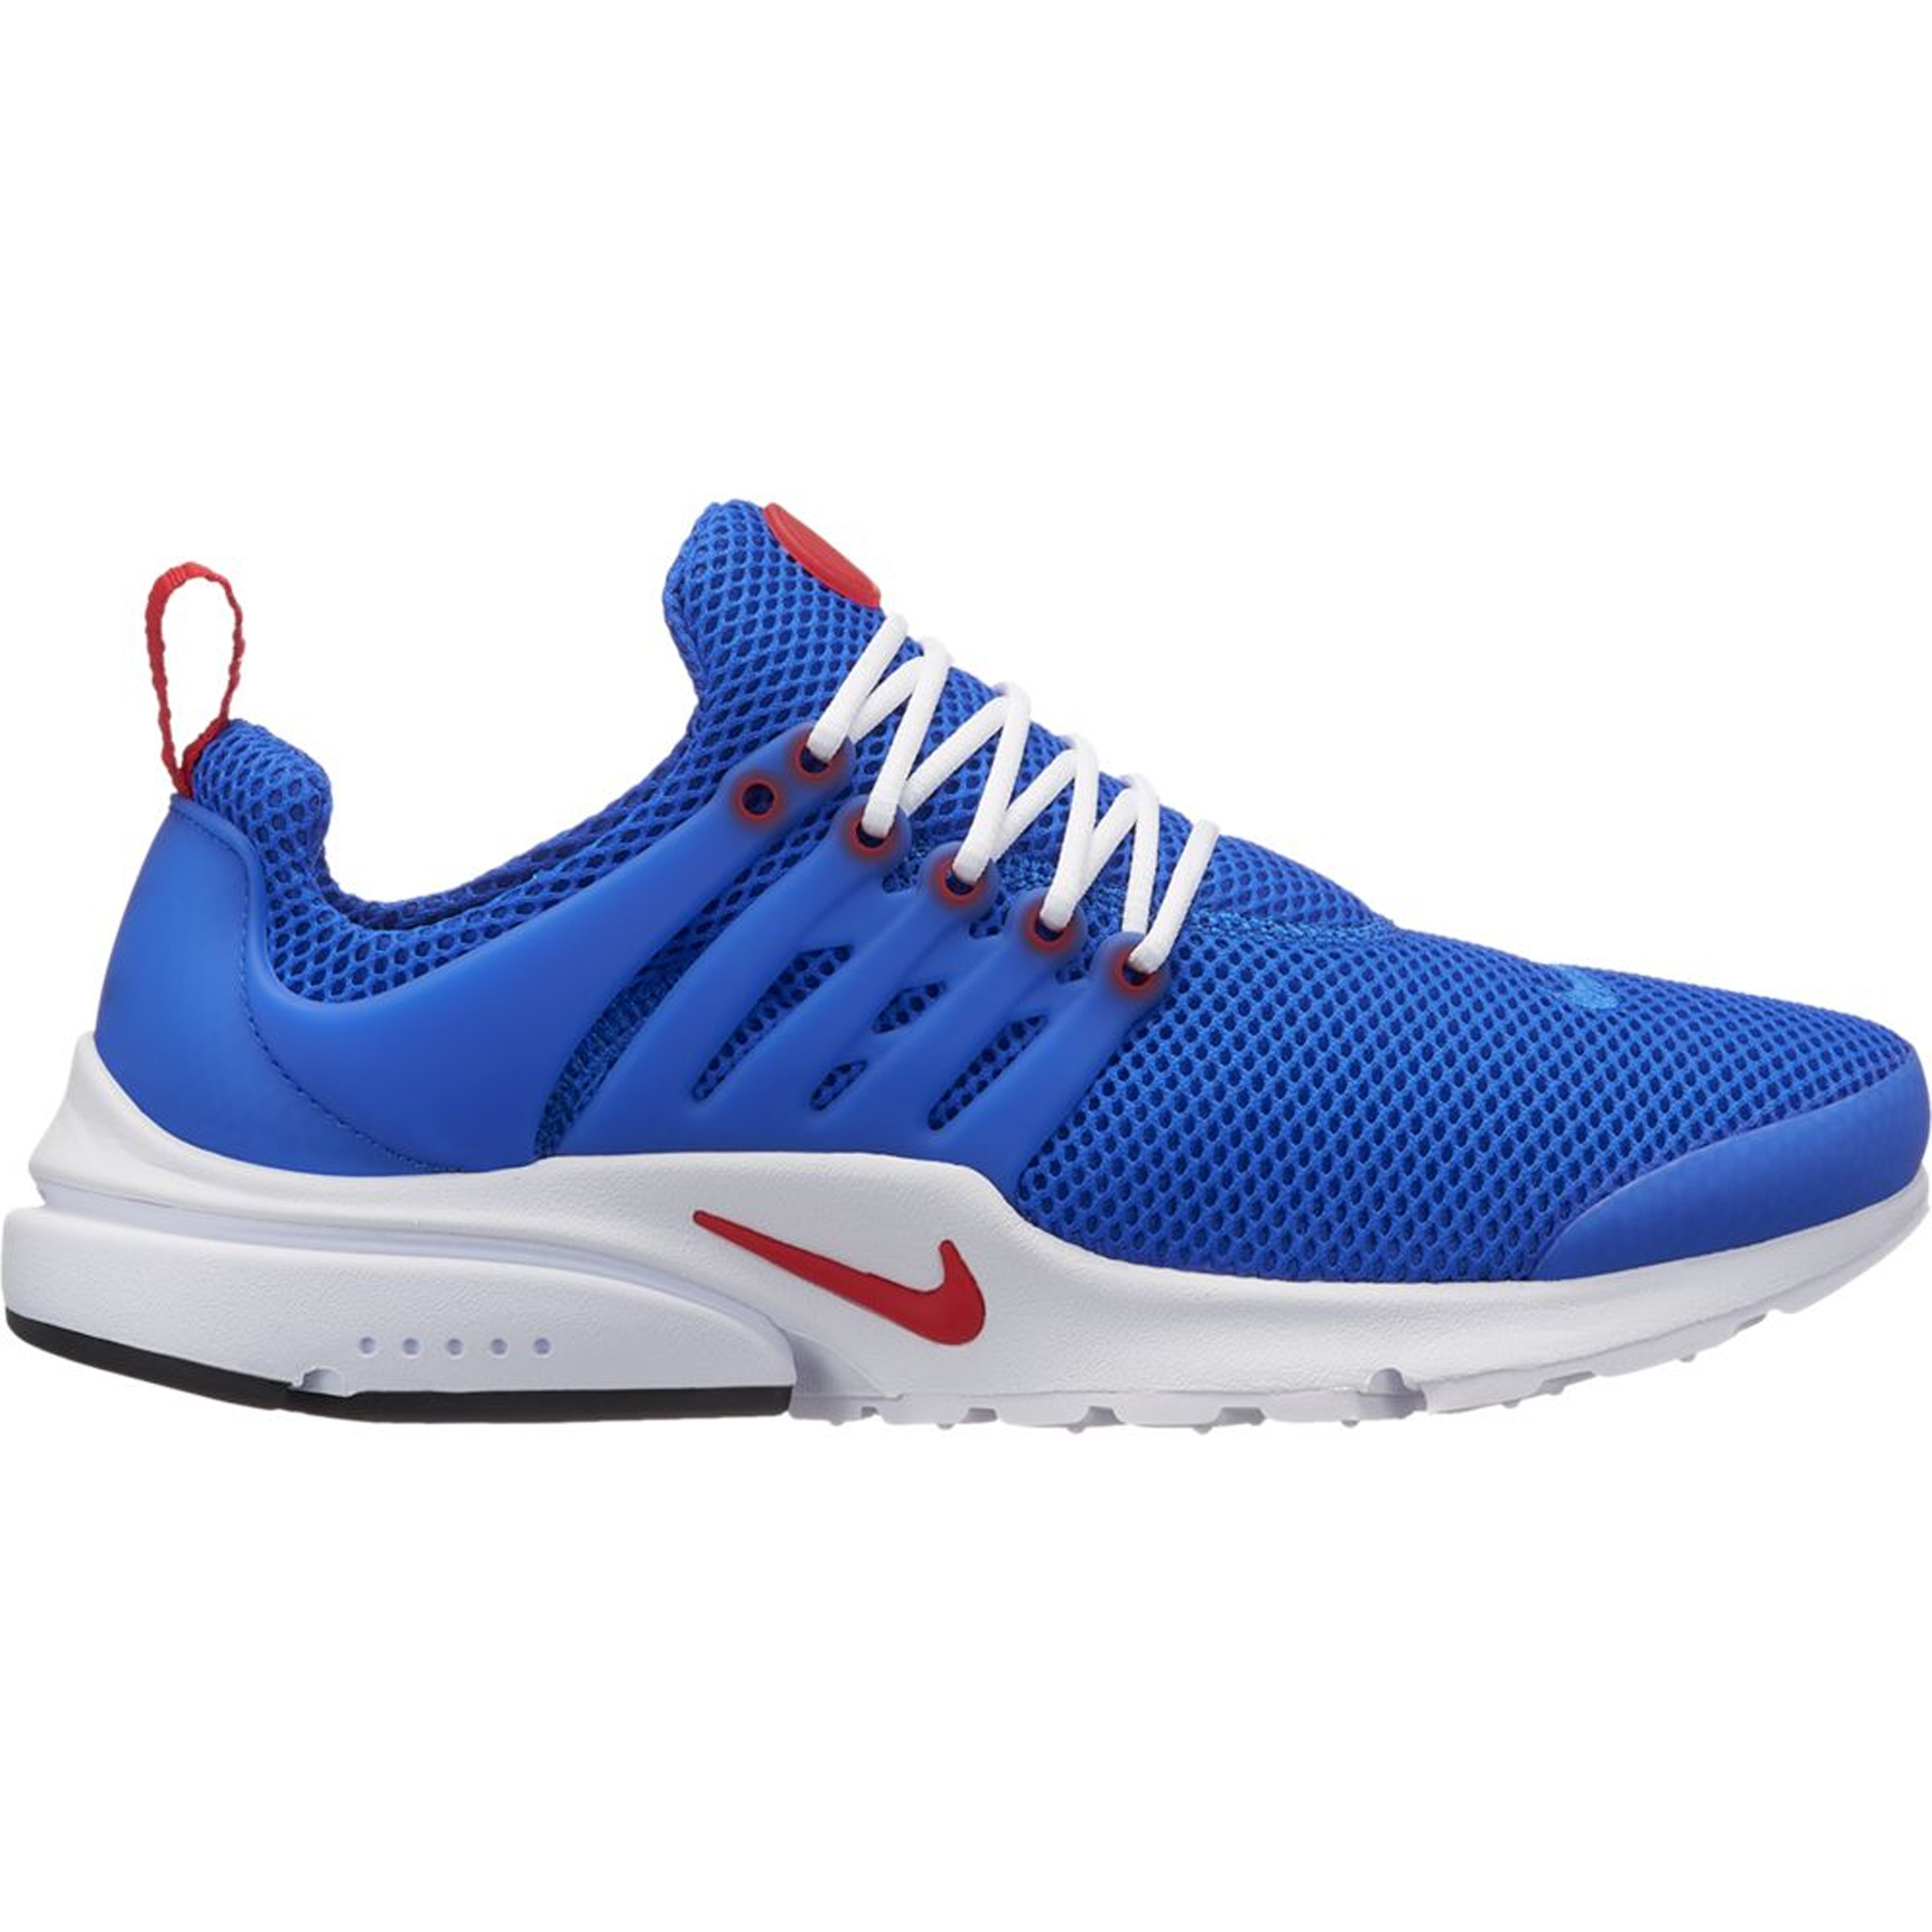 Nike Air Presto Racer Blue University Red White (848187-408)